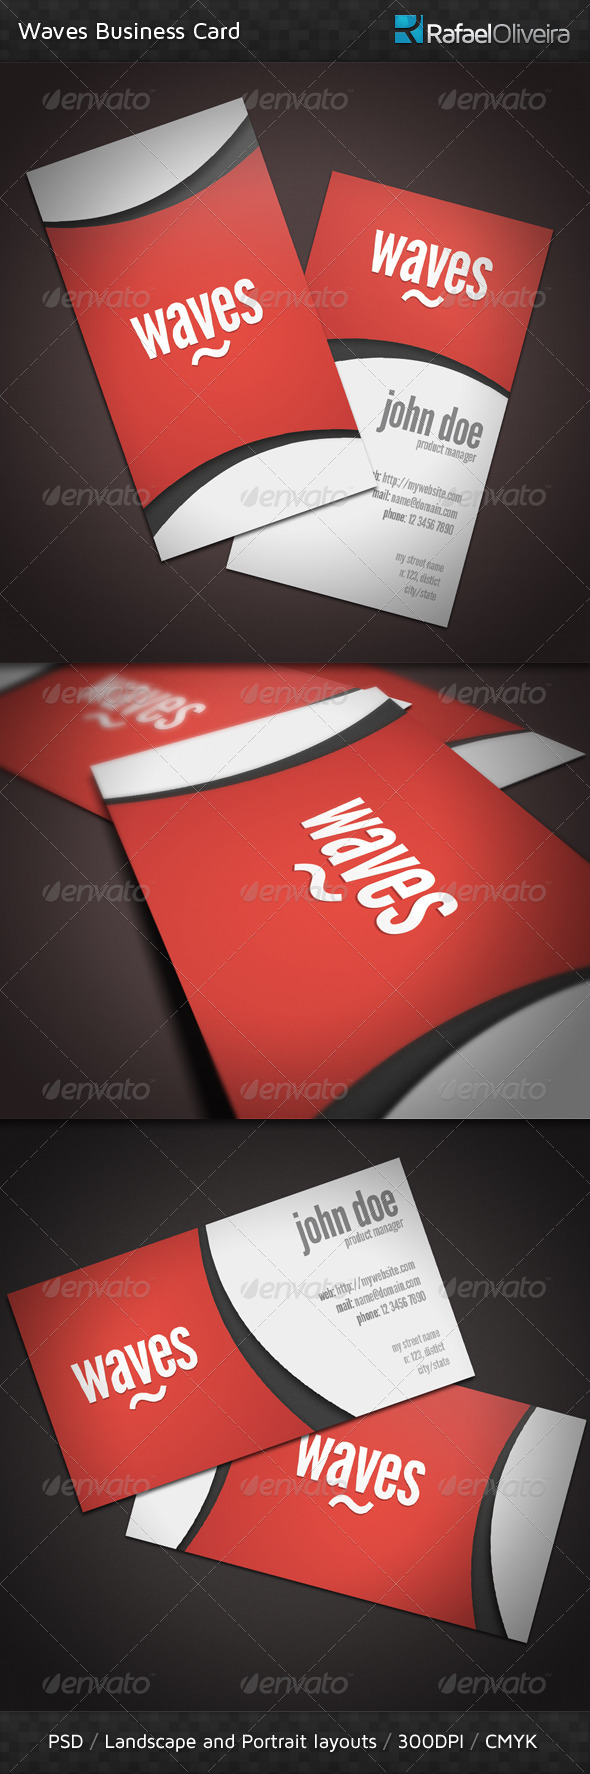 Waves Business Cards - Creative Business Cards